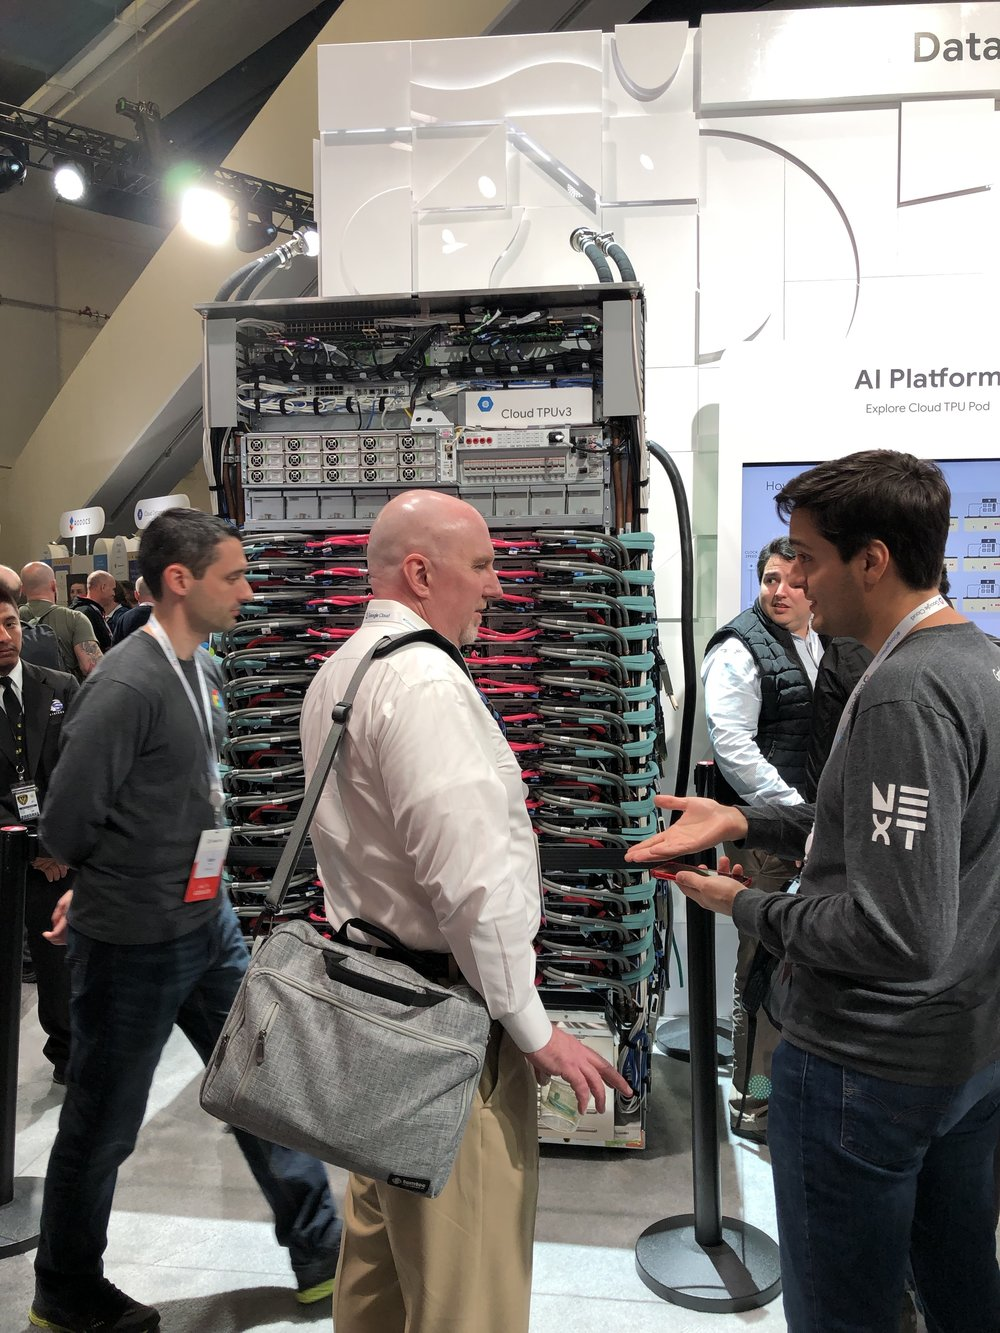 Here is one of the Cloud TPUv3 racks shown at the conference.